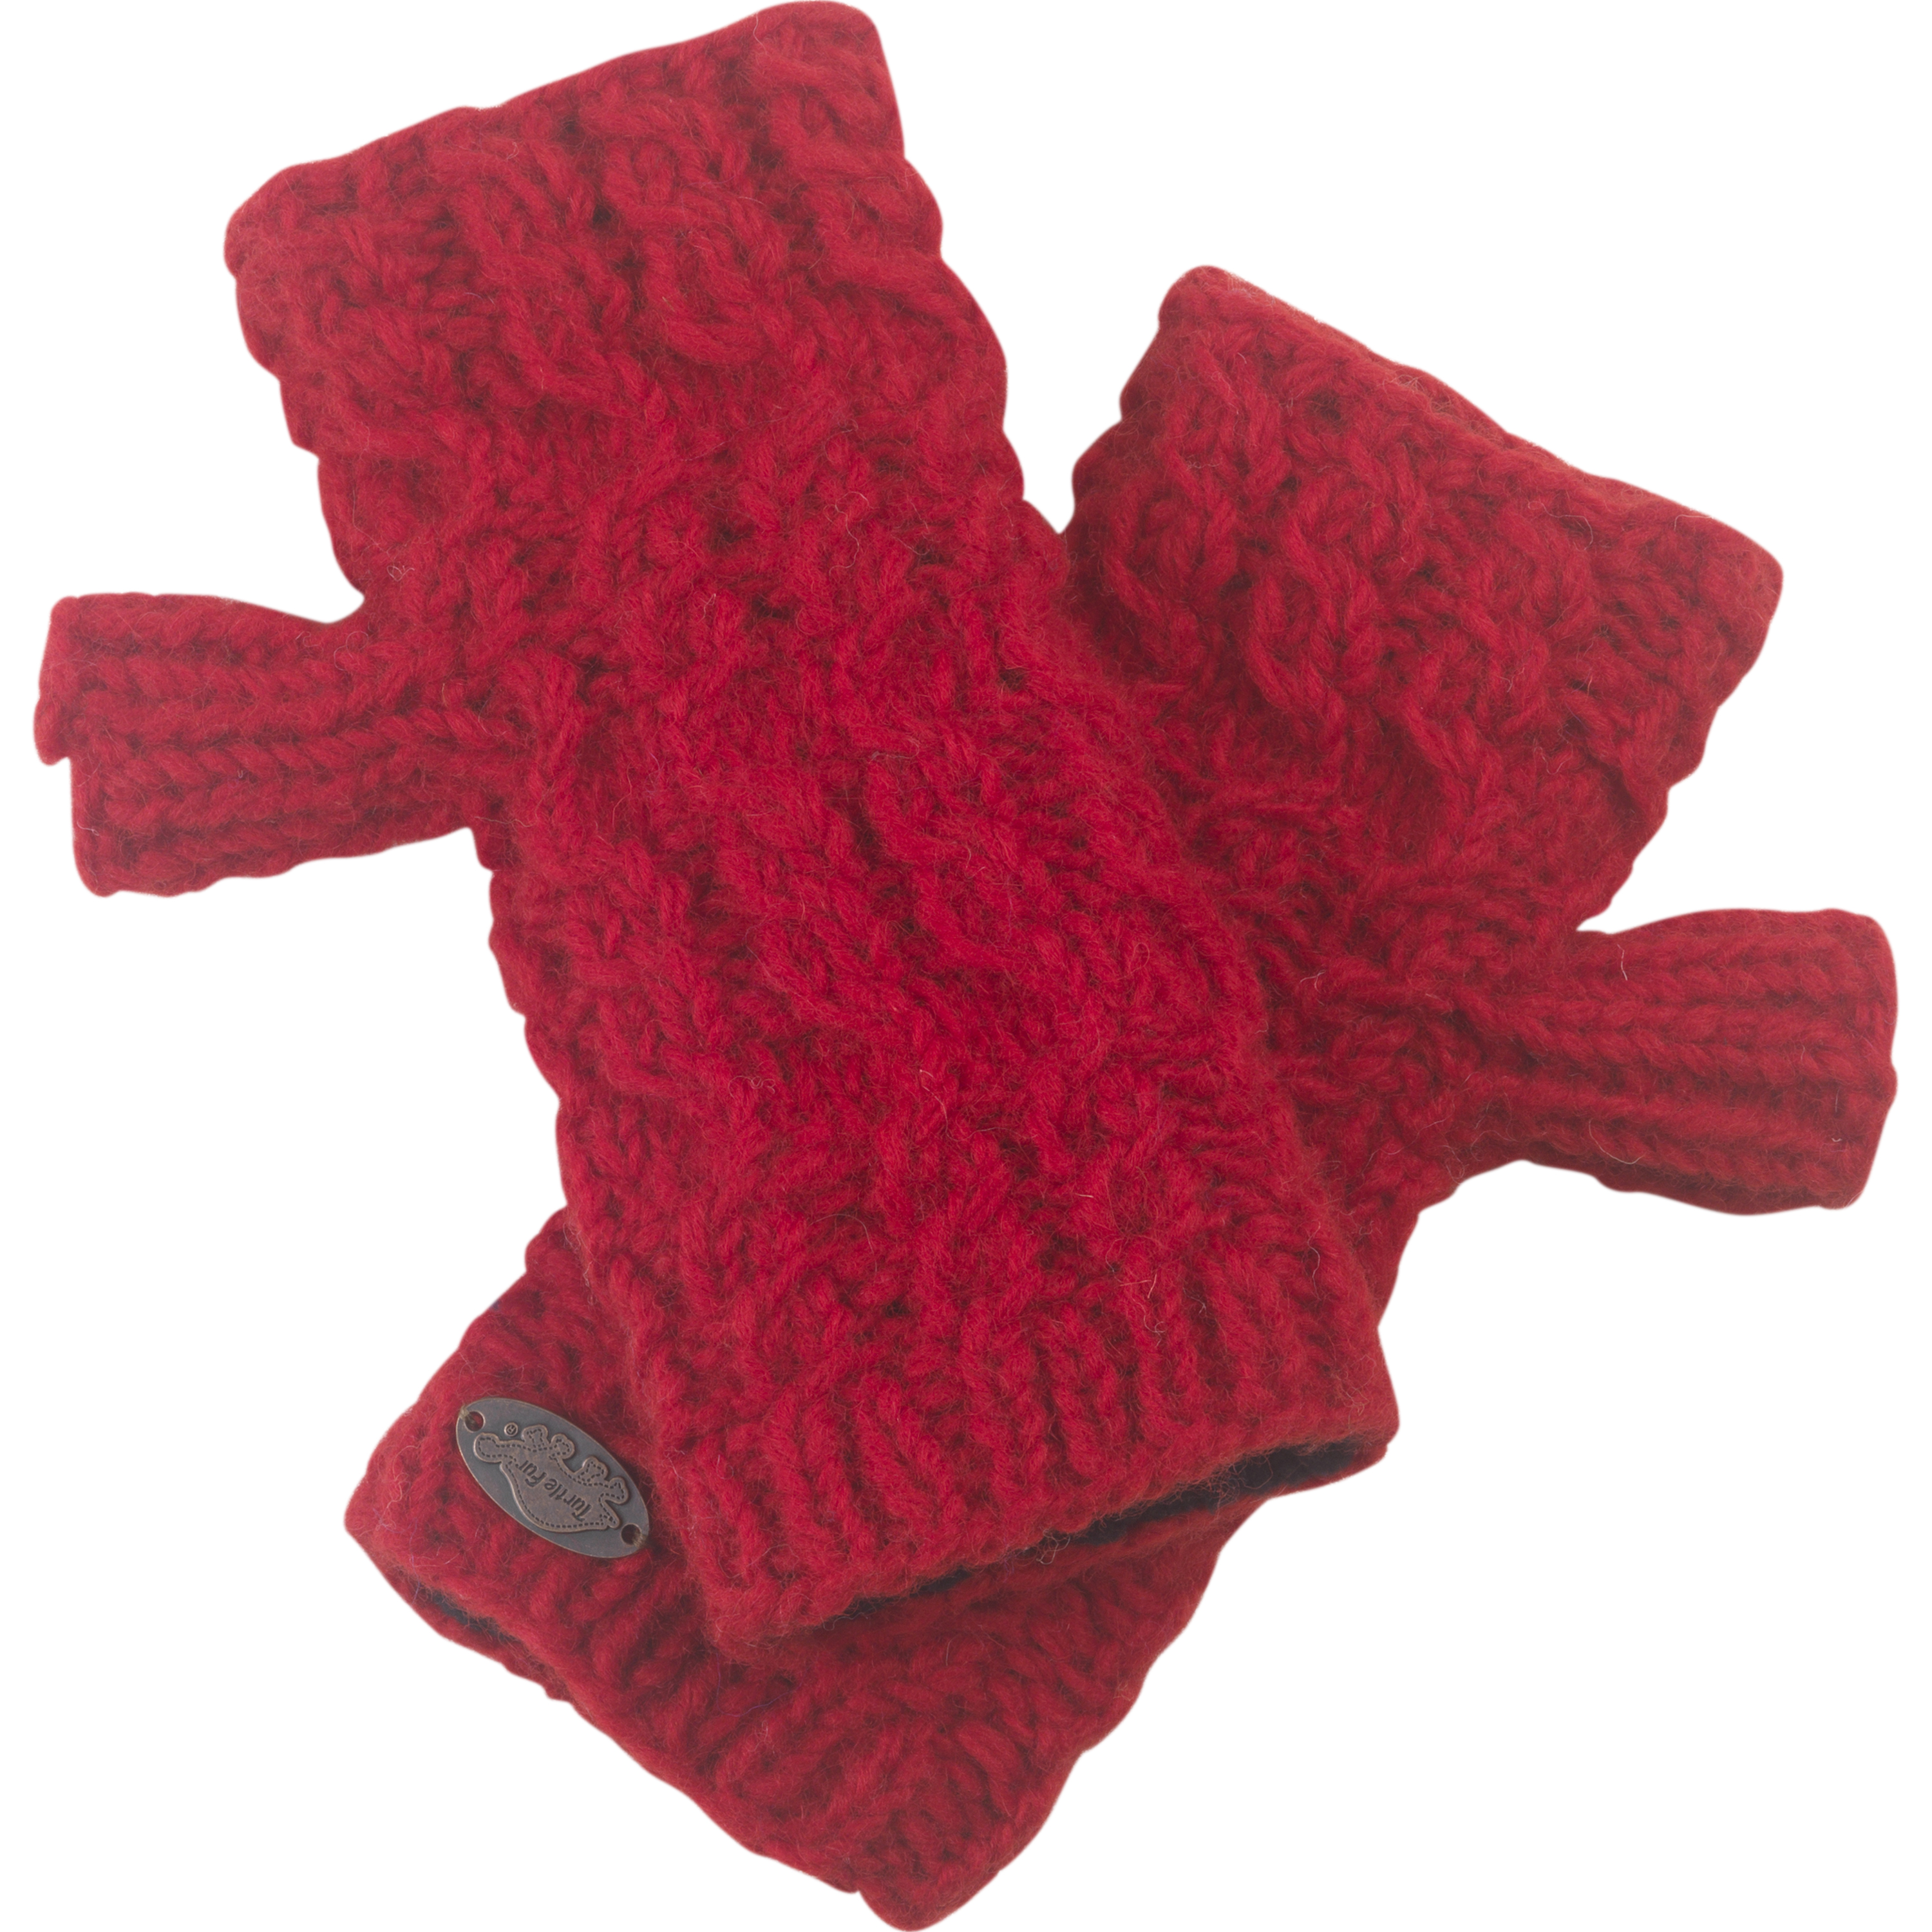 Turtle Fur Women's Nepal Mika Fingerless Mittens, Hand Knit Wool